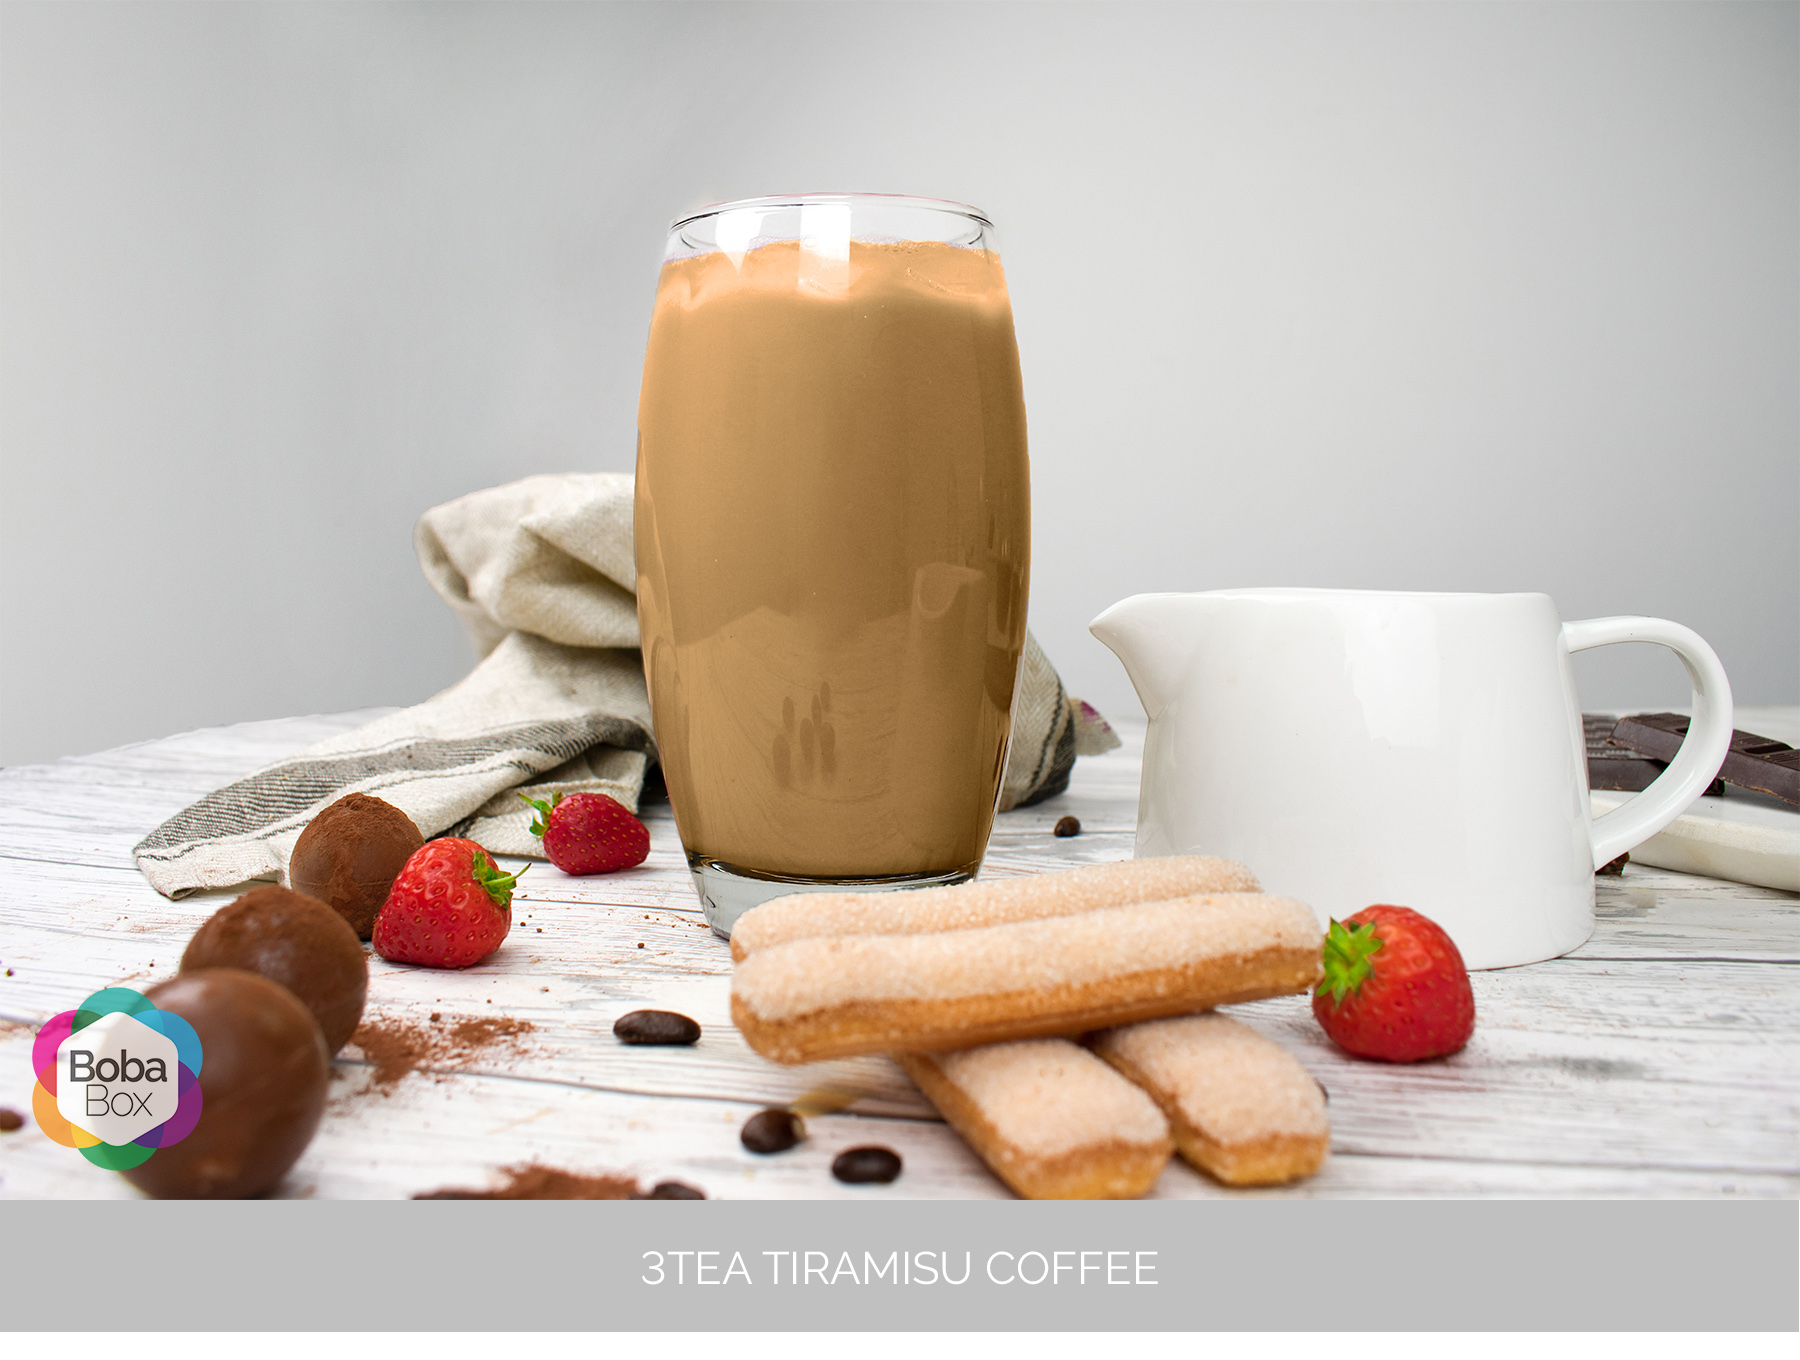 3TEA Tiramisu Coffee